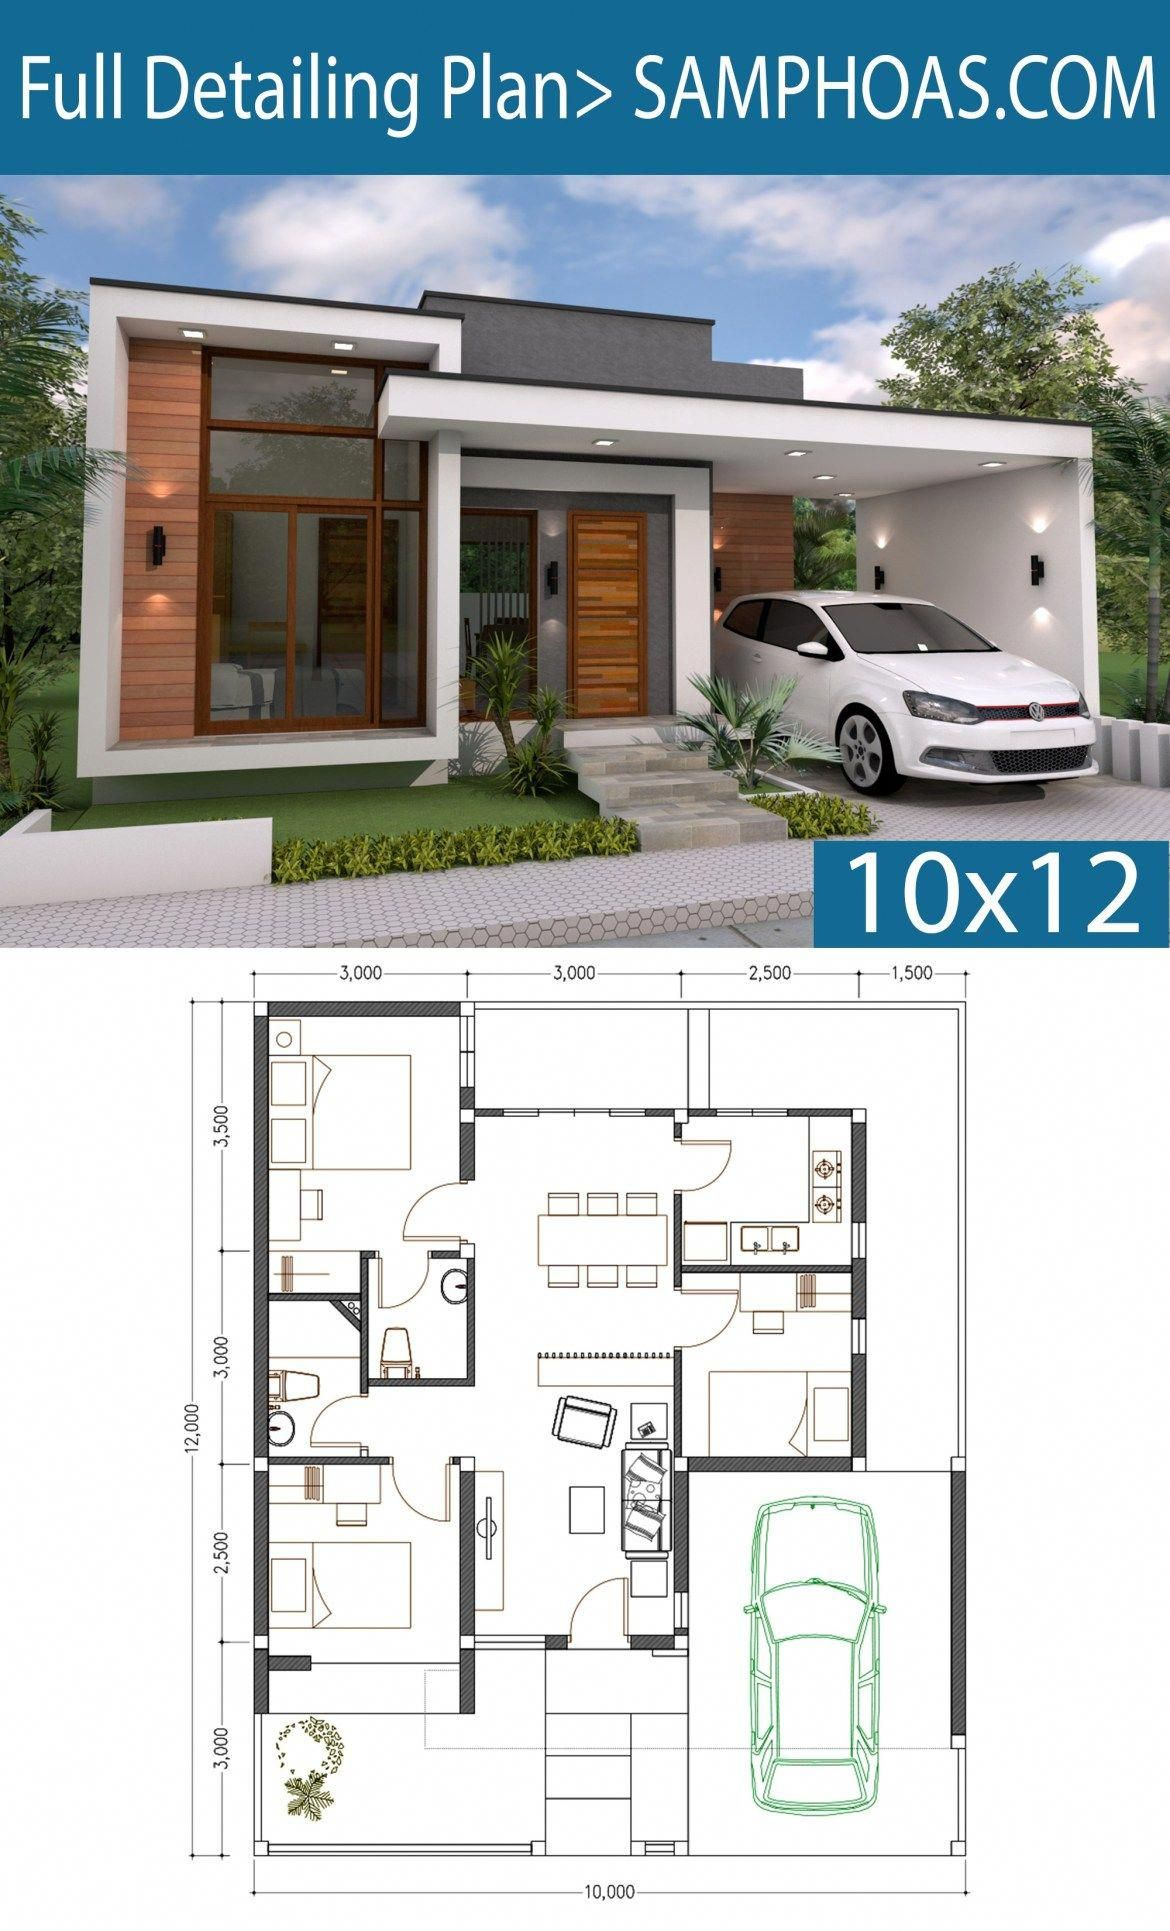 Modern Home Design And Floor Plans Modernhomedesign Simple House Design Bungalow House Plans Modern Bungalow House